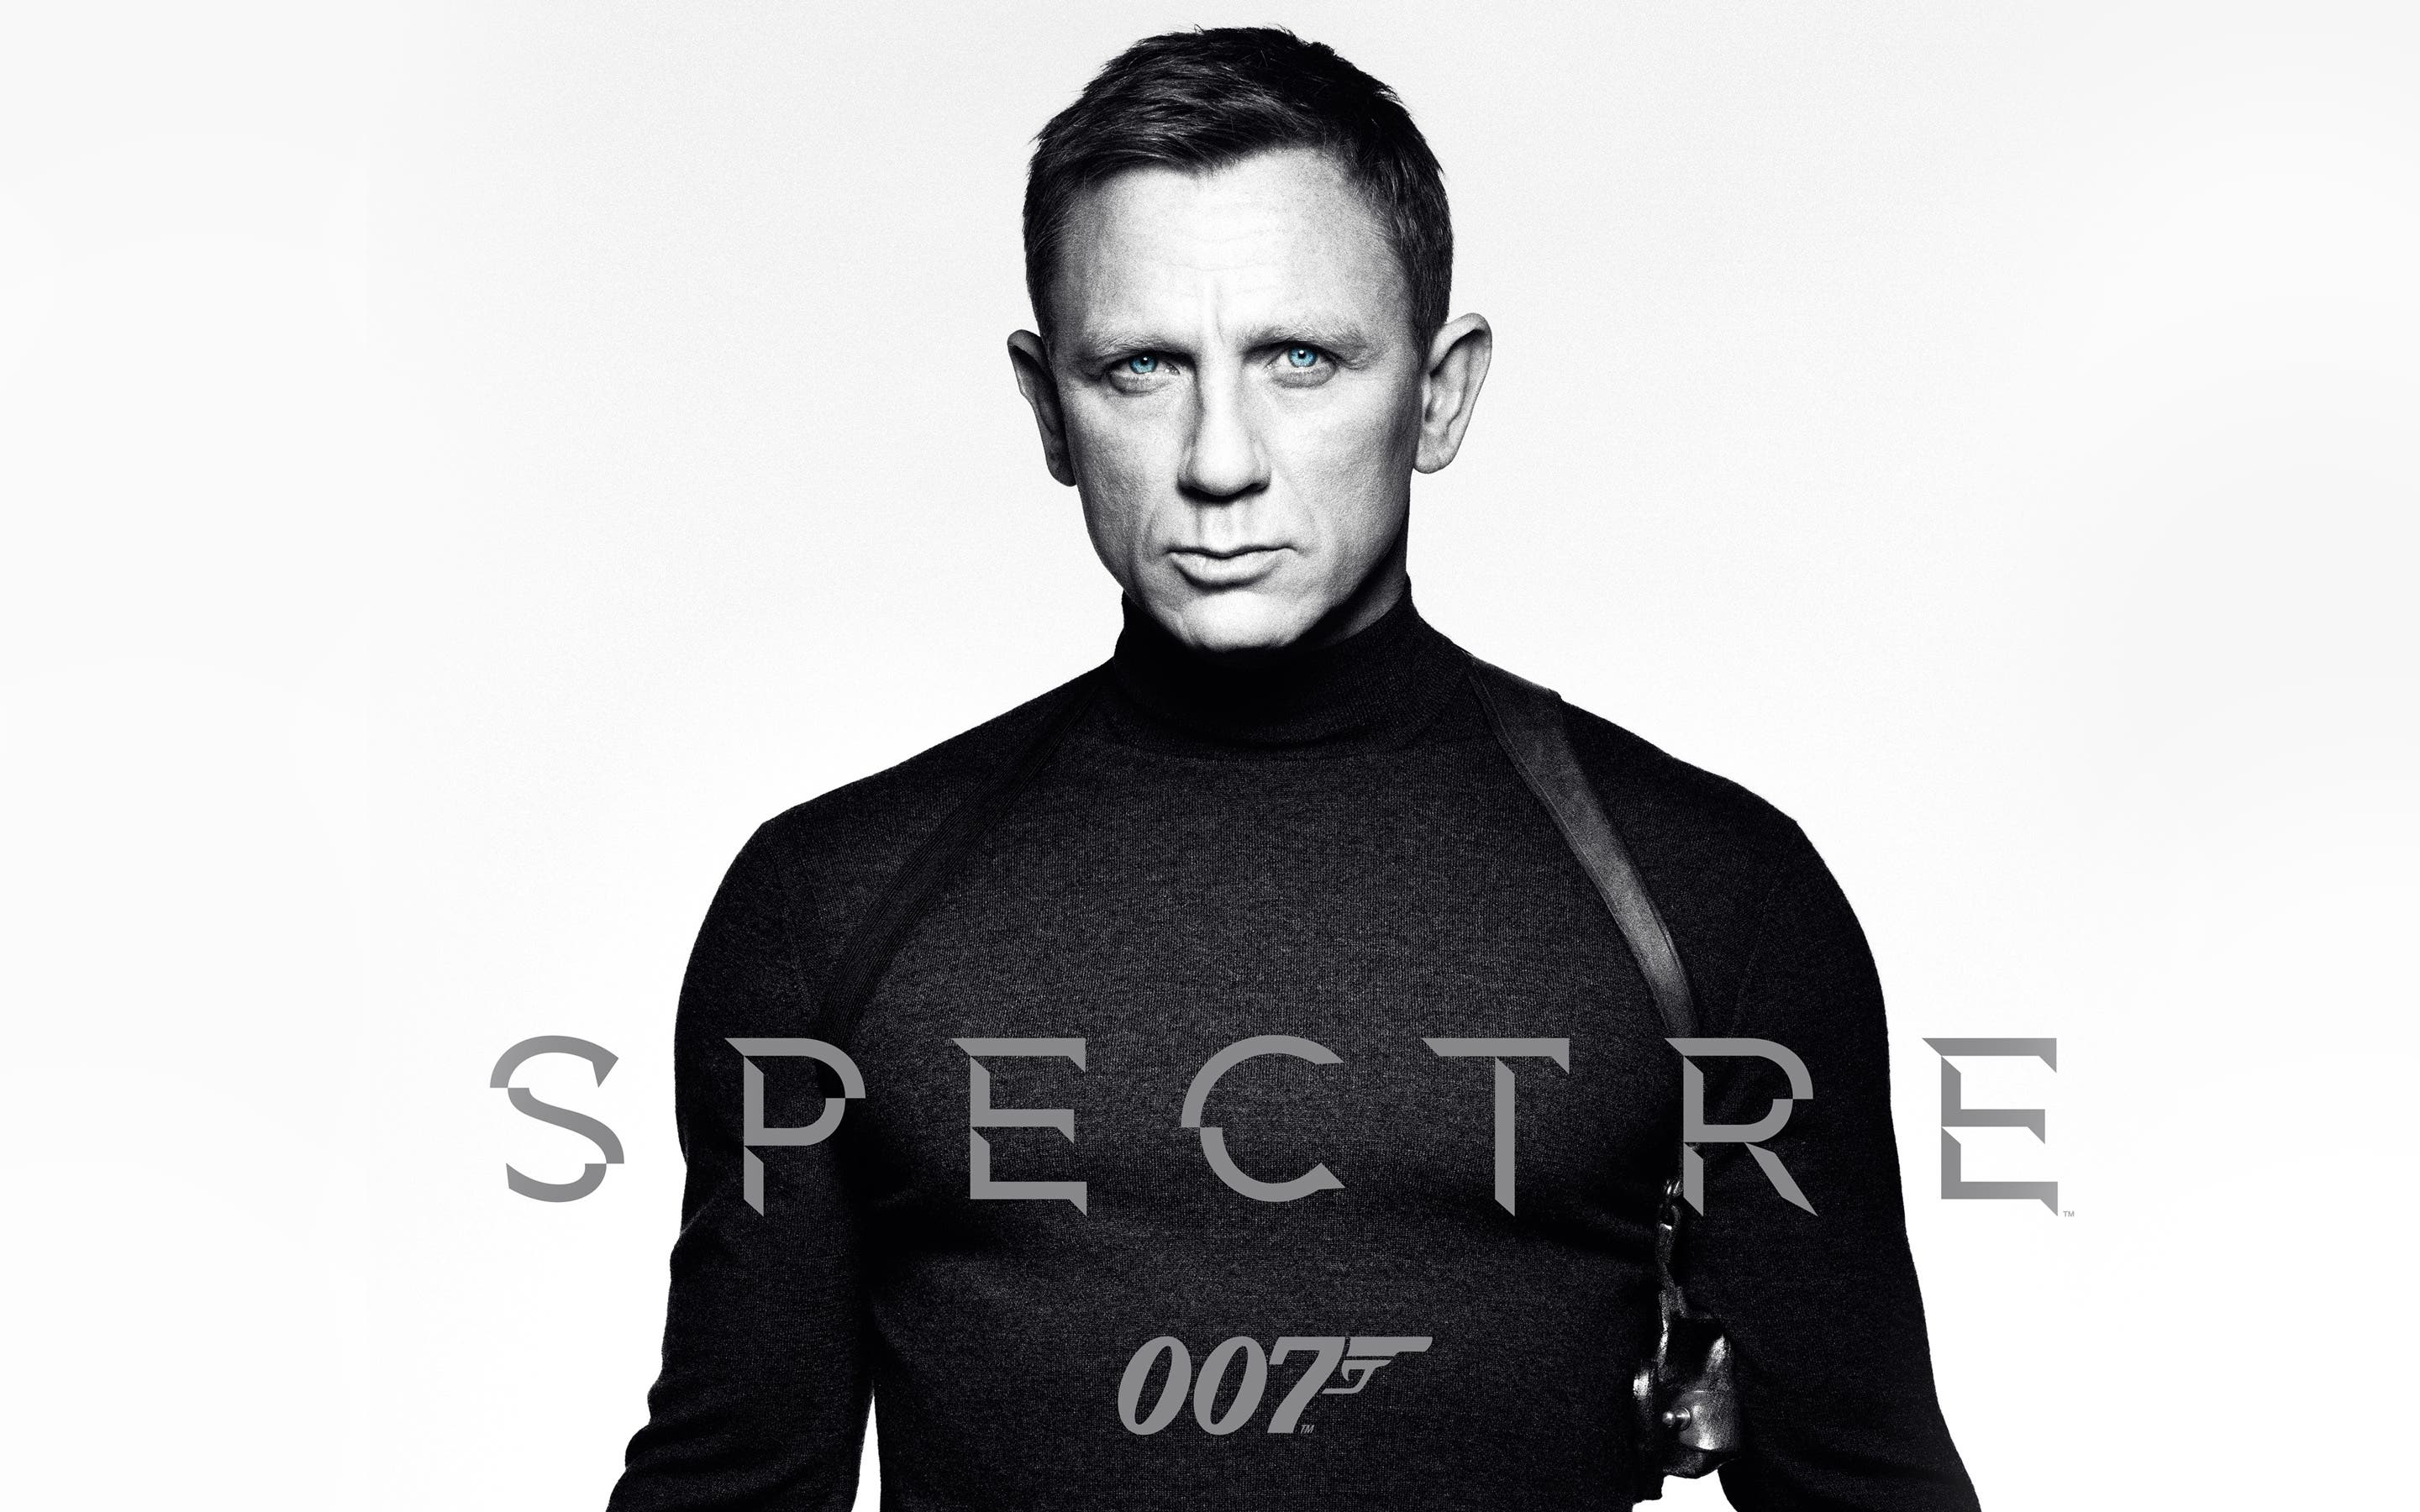 spectre_2015_james_bond_007-wide